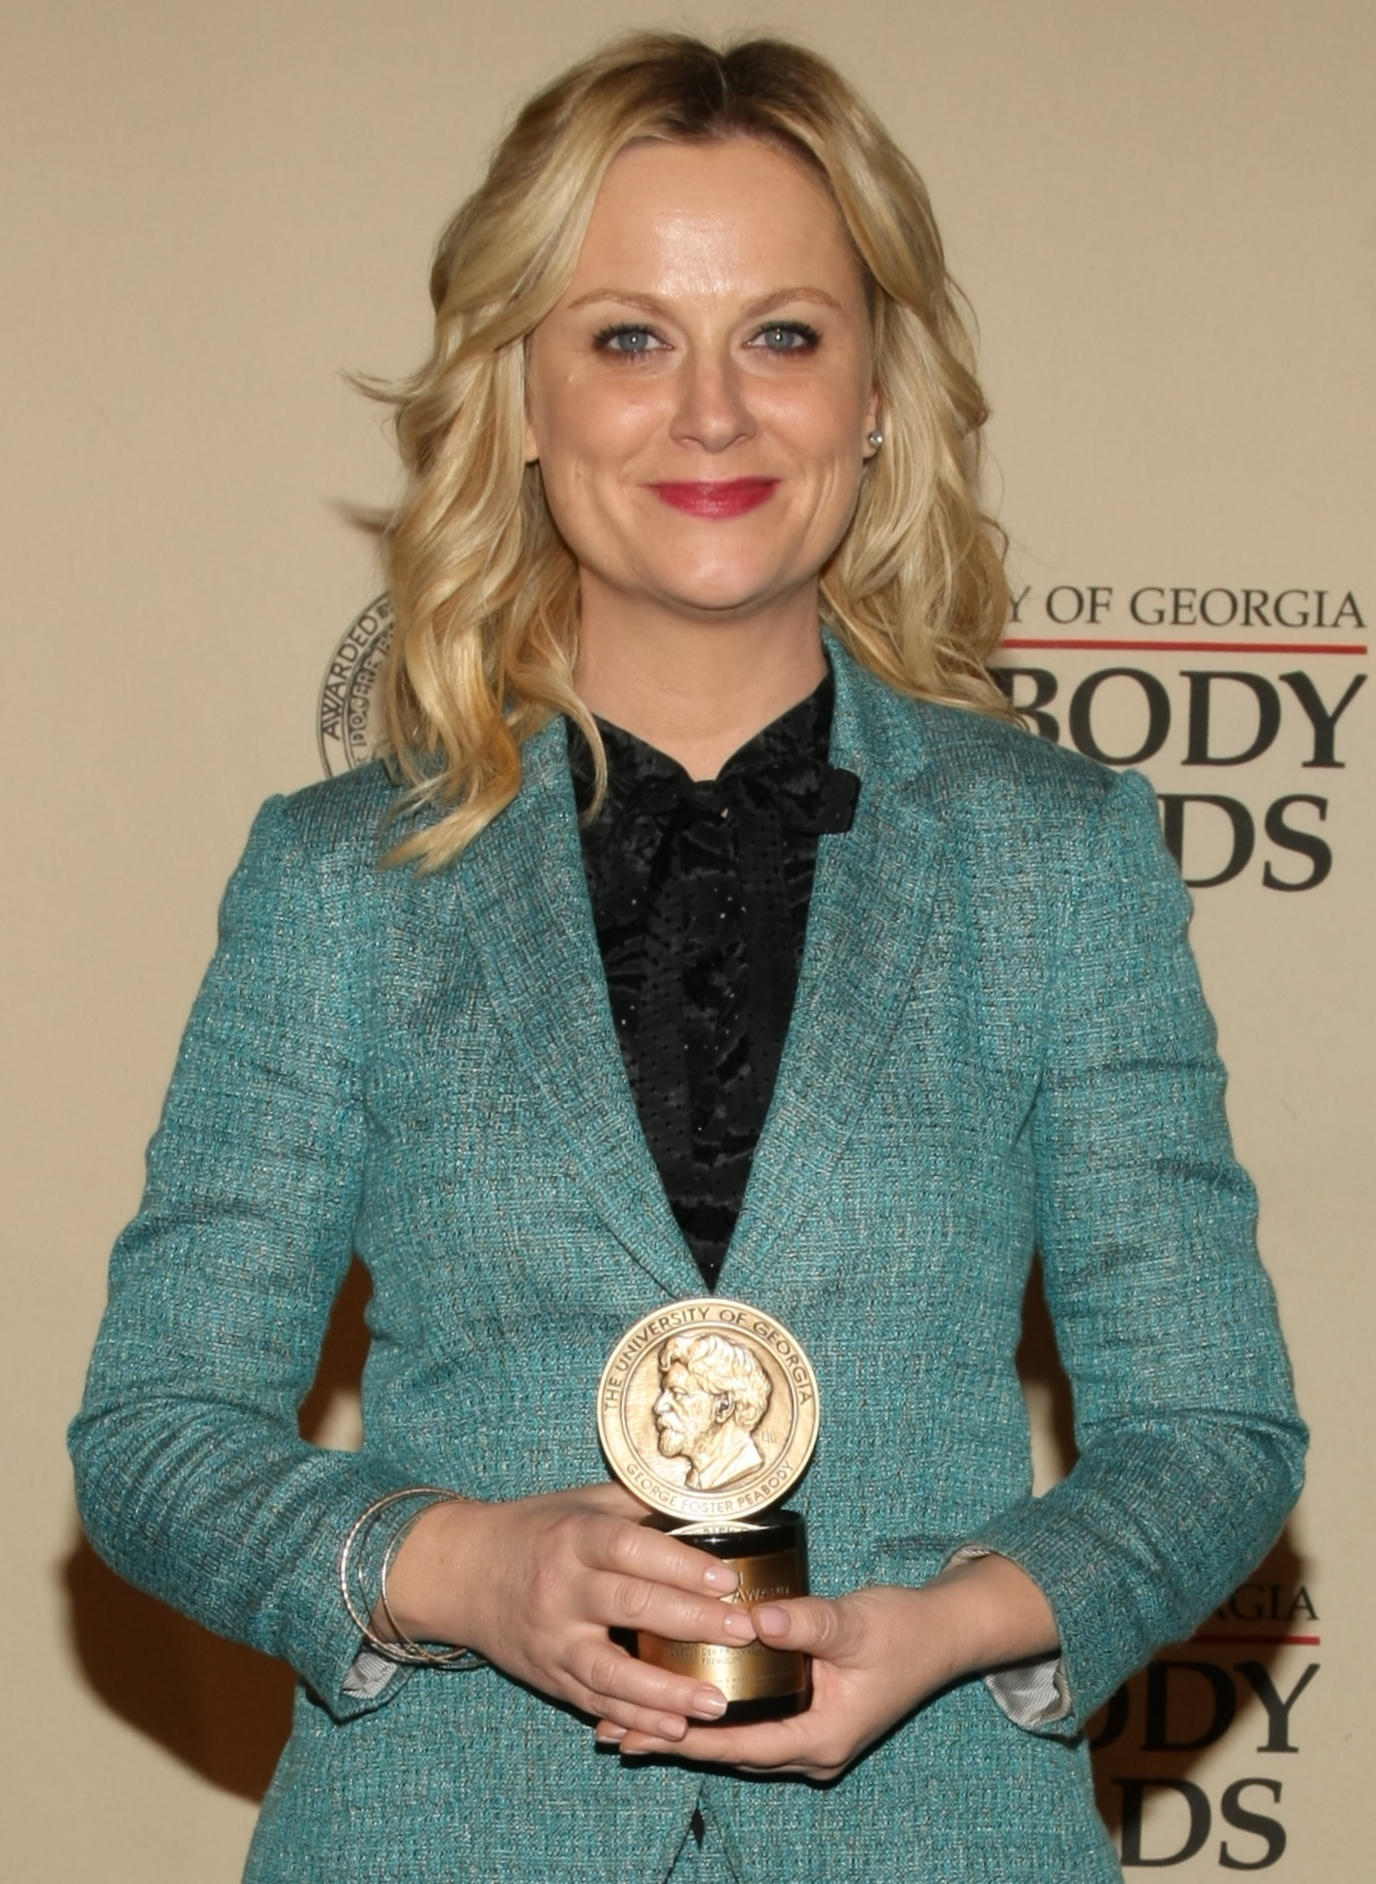 Poehler at the 2012 Annual Peabody Awards.